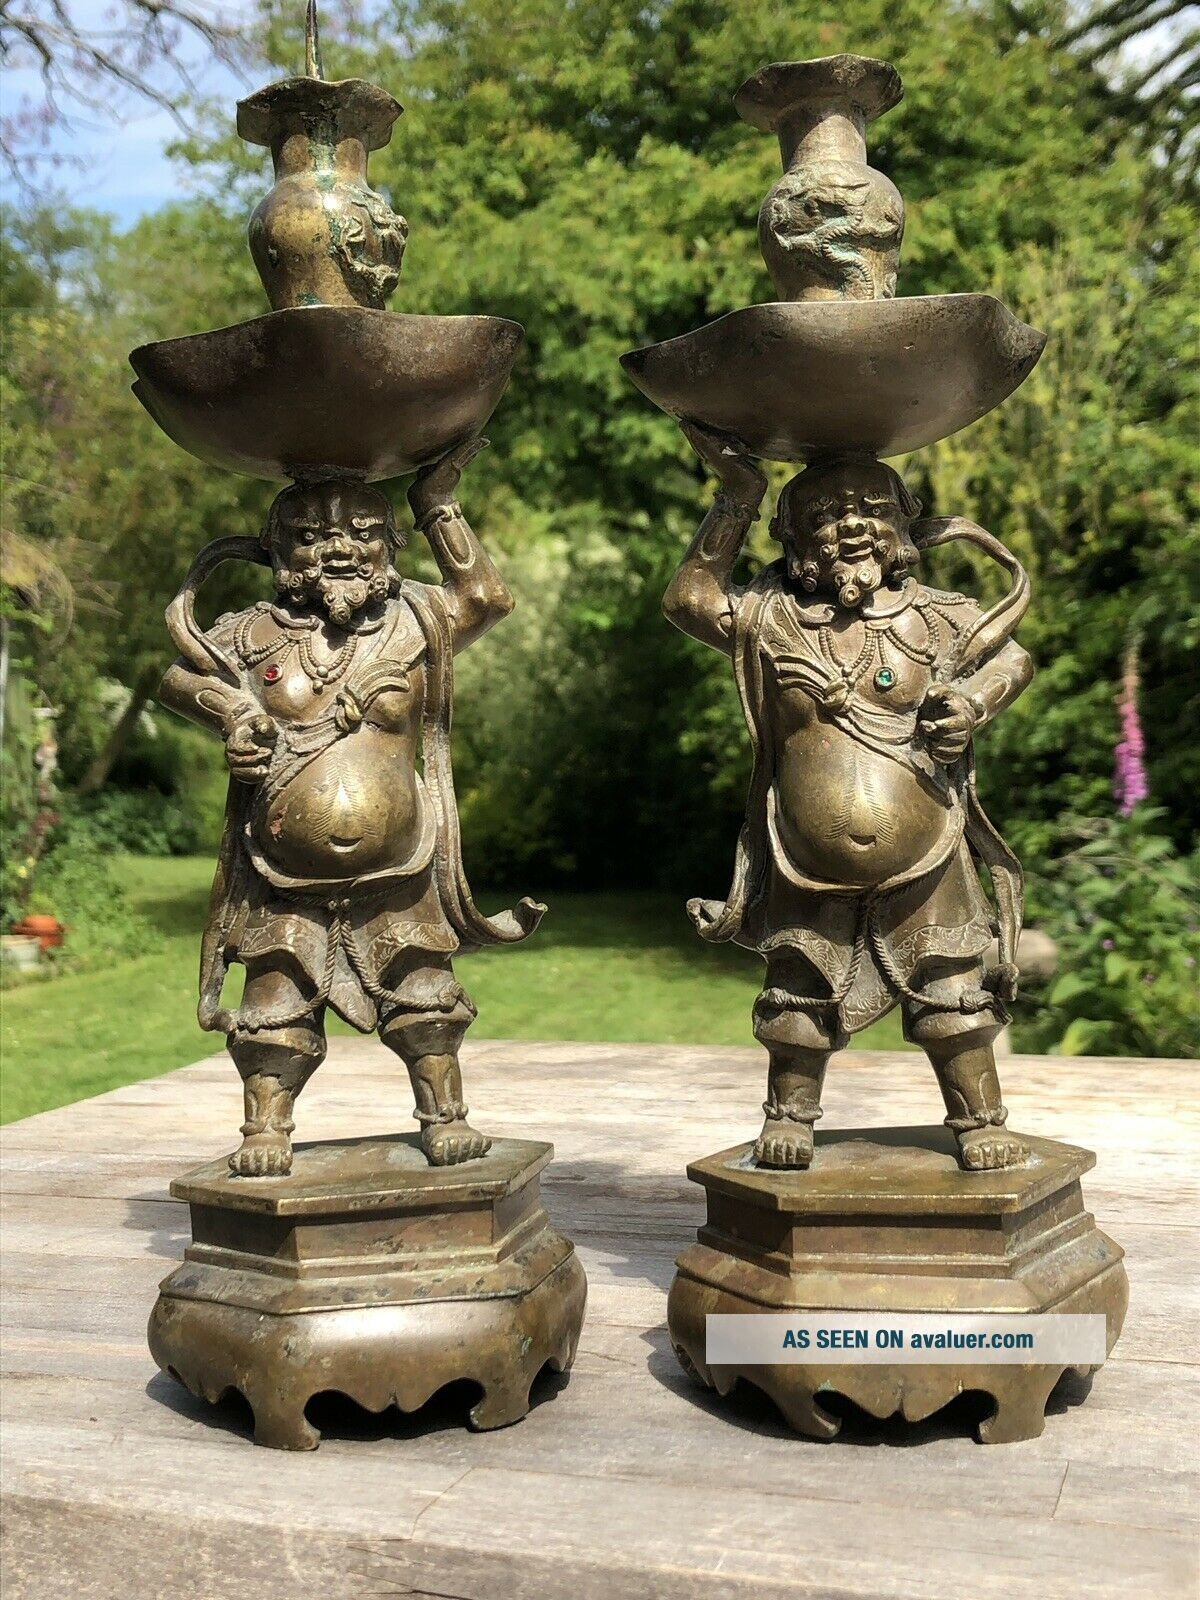 FINE CHINESE QING DYNASTY 18TH CENTURY BRONZE CANDLESTICK IMMORTALS